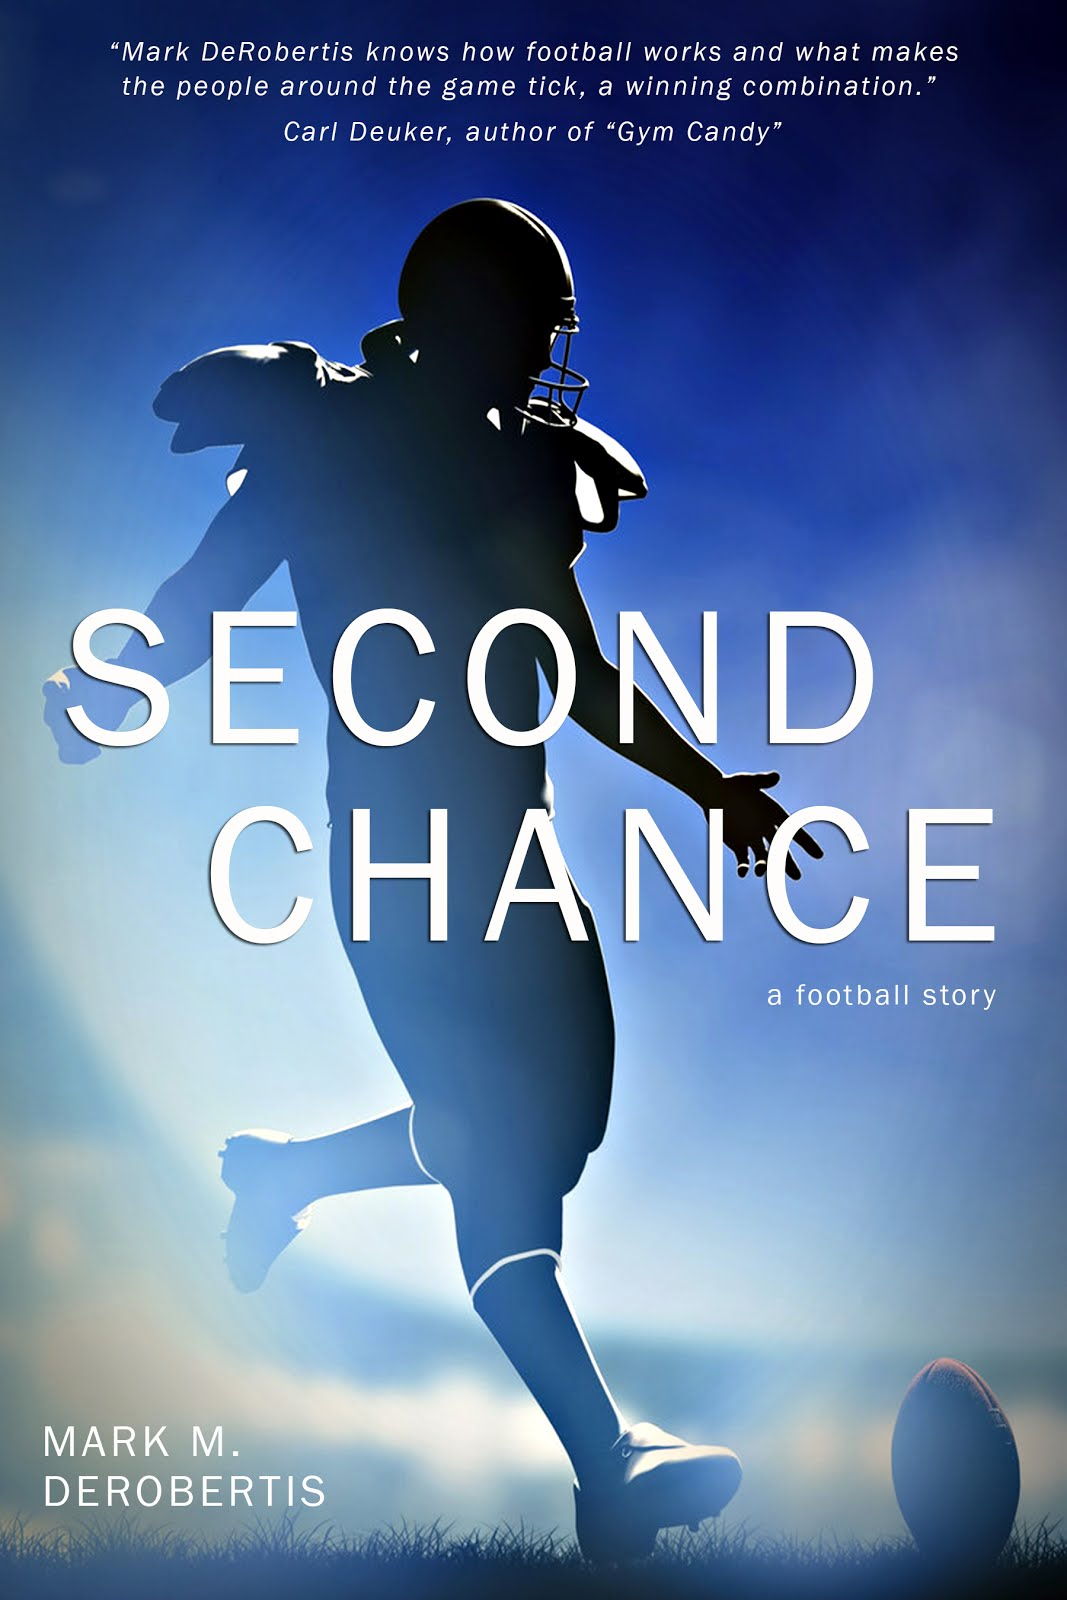 Second Chance: a Football Story - Click on image to buy!